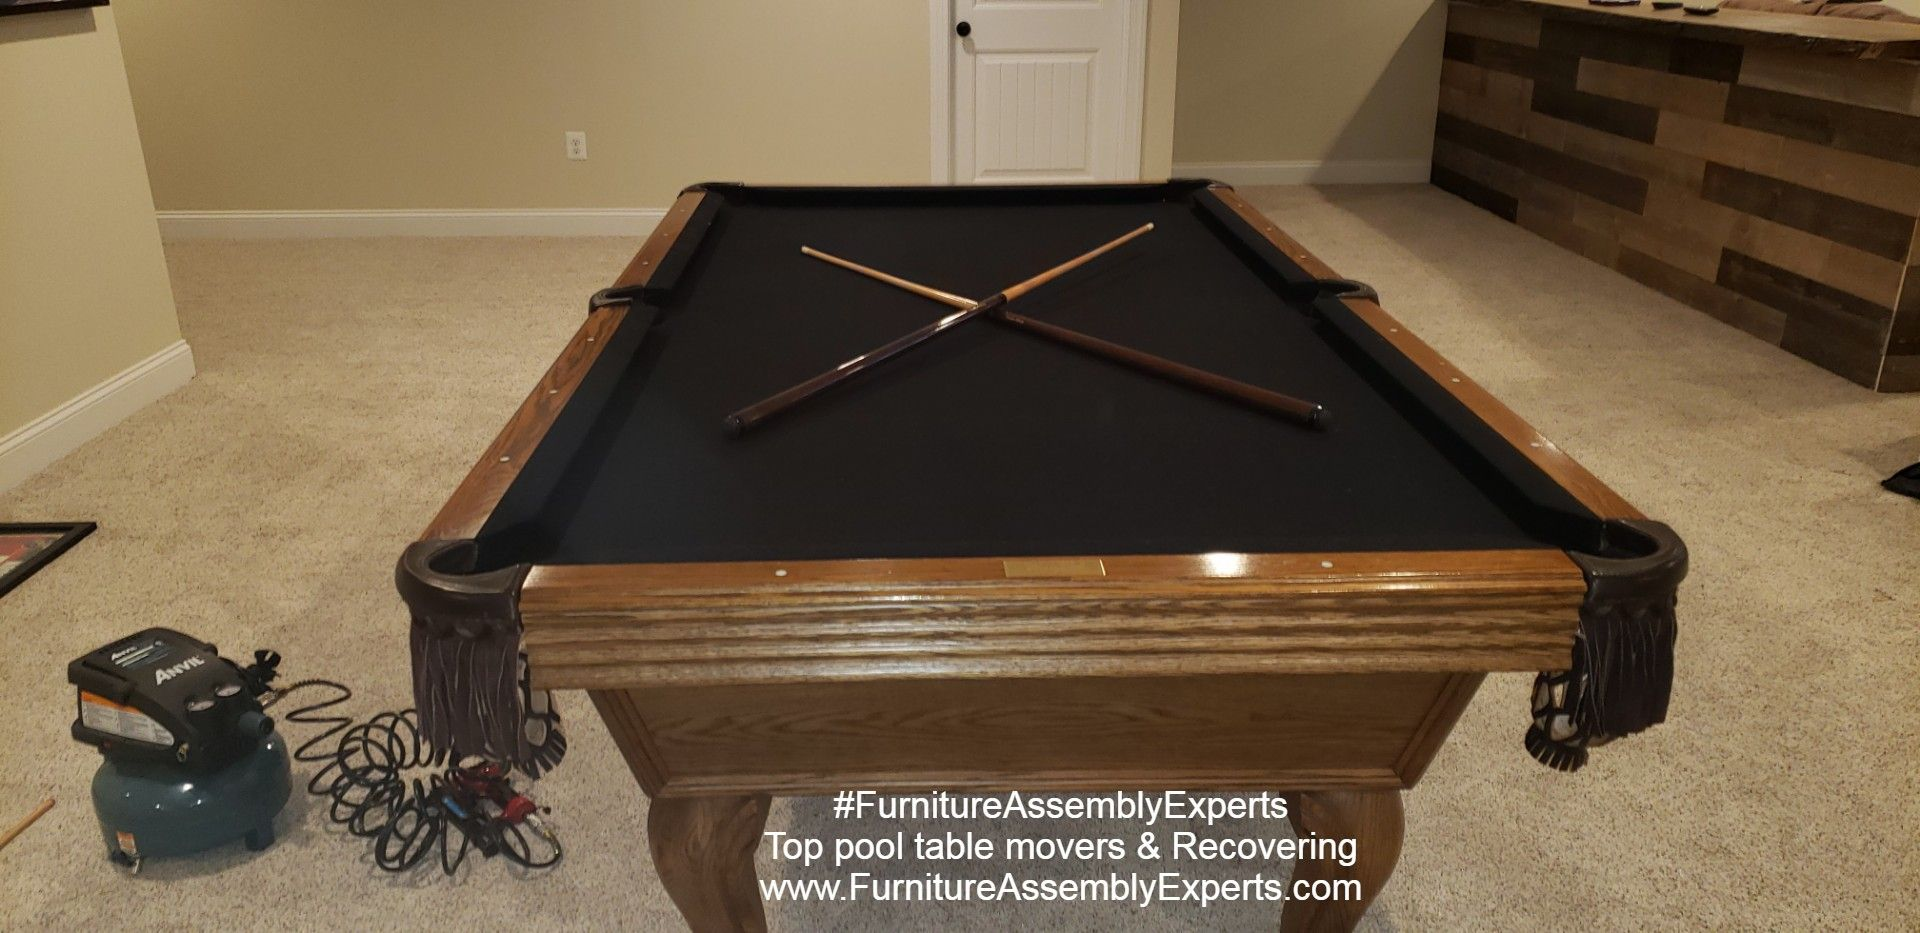 pool table moving and reassembly completed for a customer